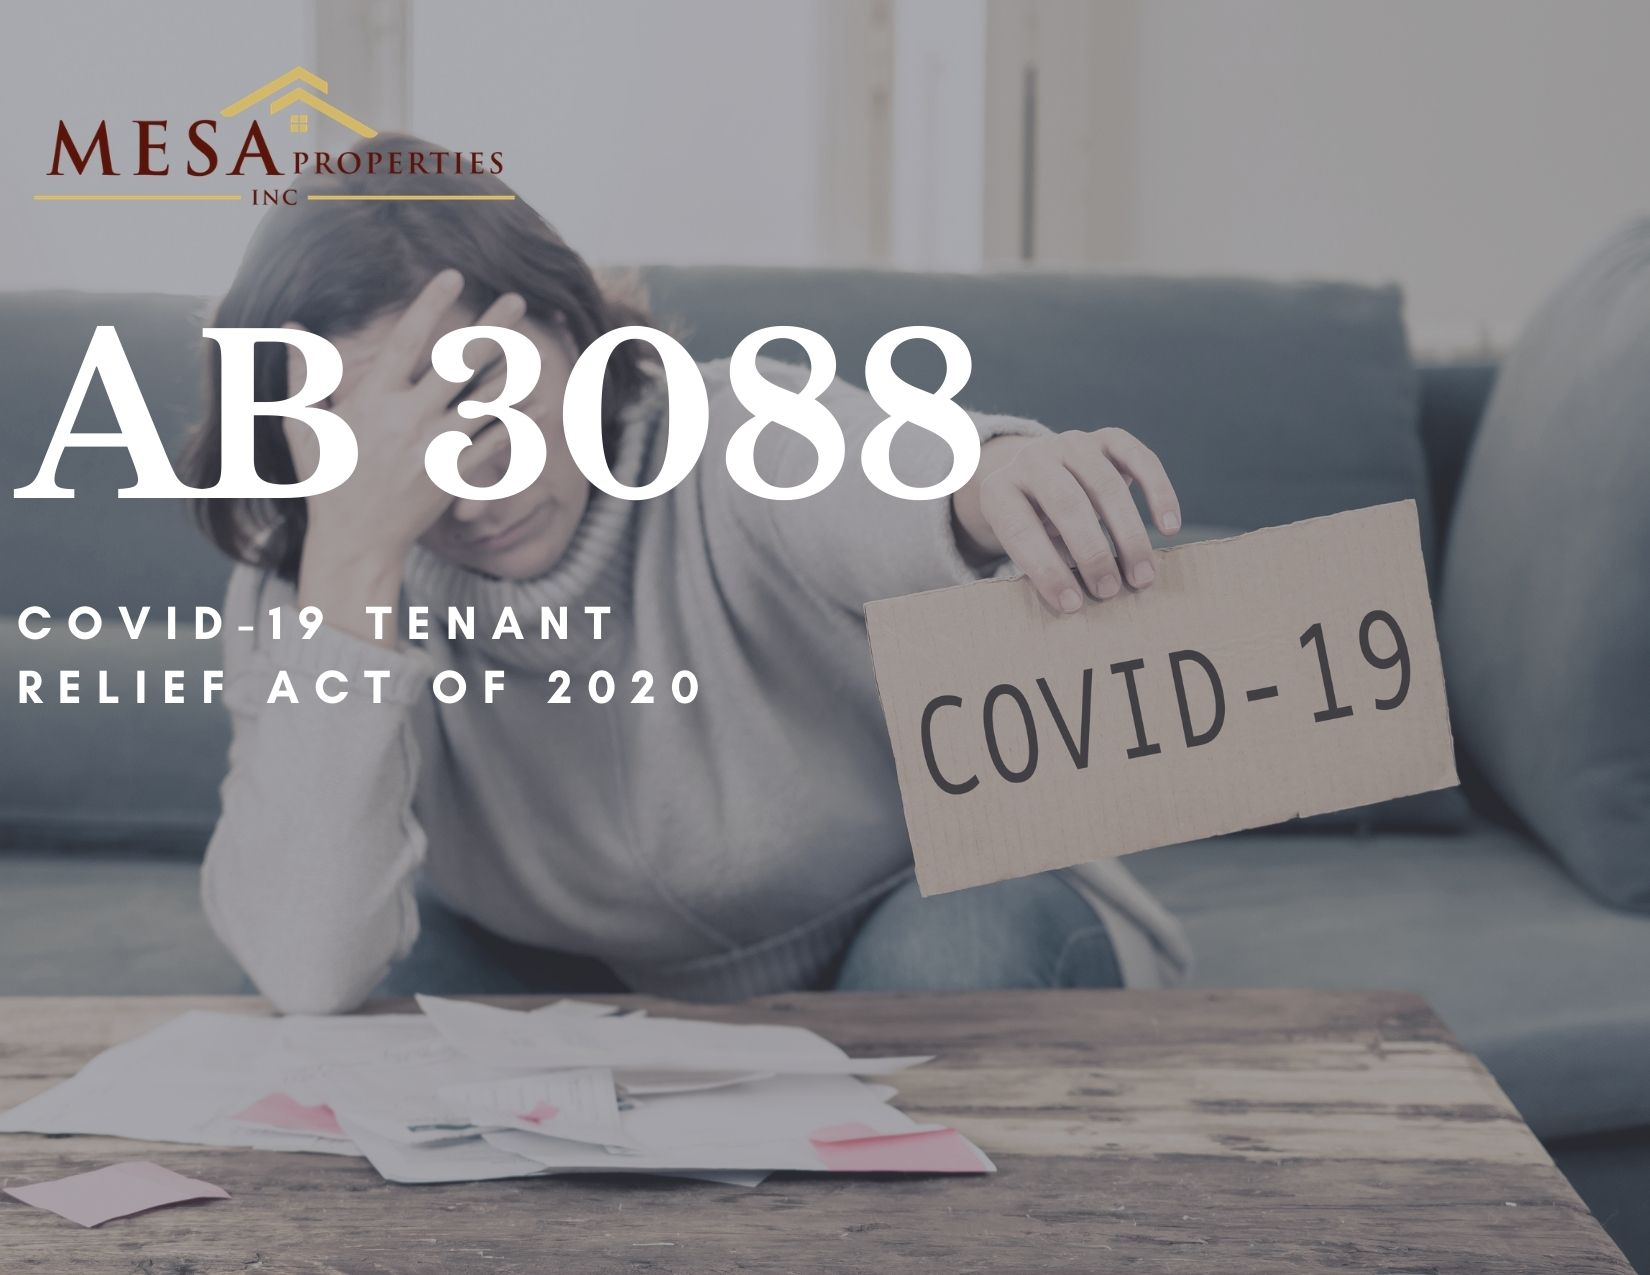 AB3088 - No Evictions In The Inland Empire And High Desert Until 2021?